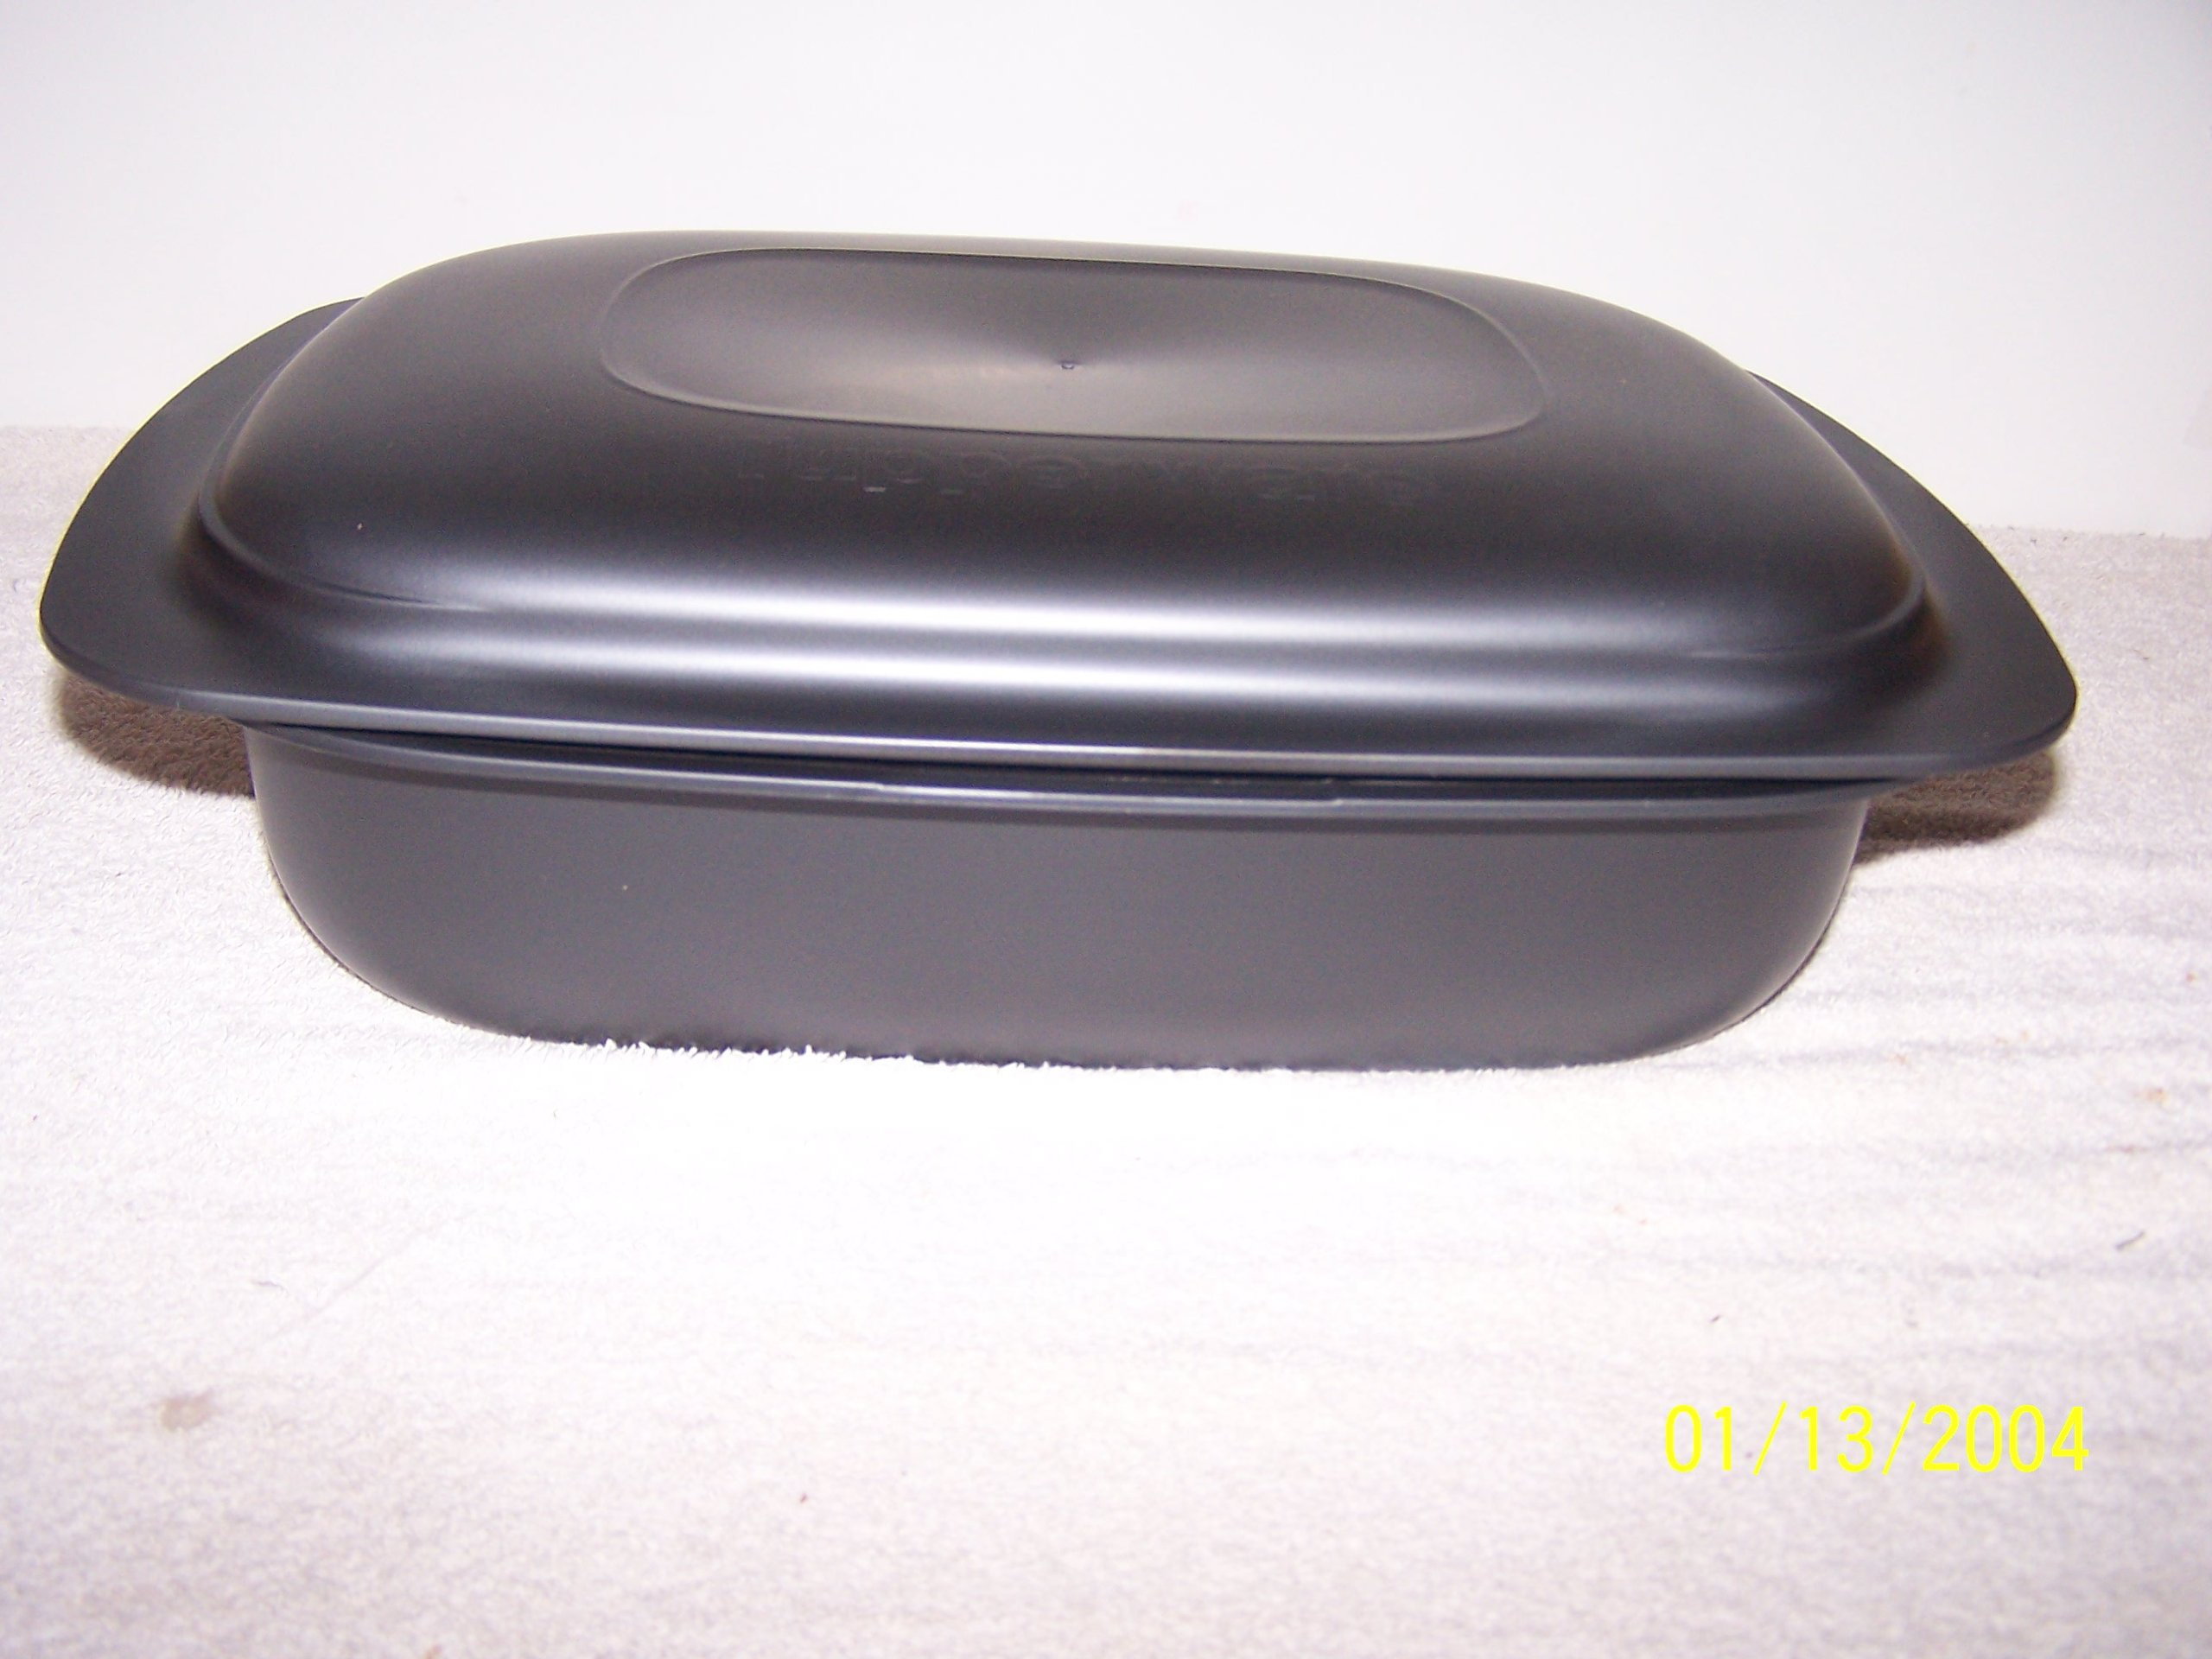 Tupperware UltraPro 3.5qt Lasagna Pan With Cover Cosmos by Tupperware